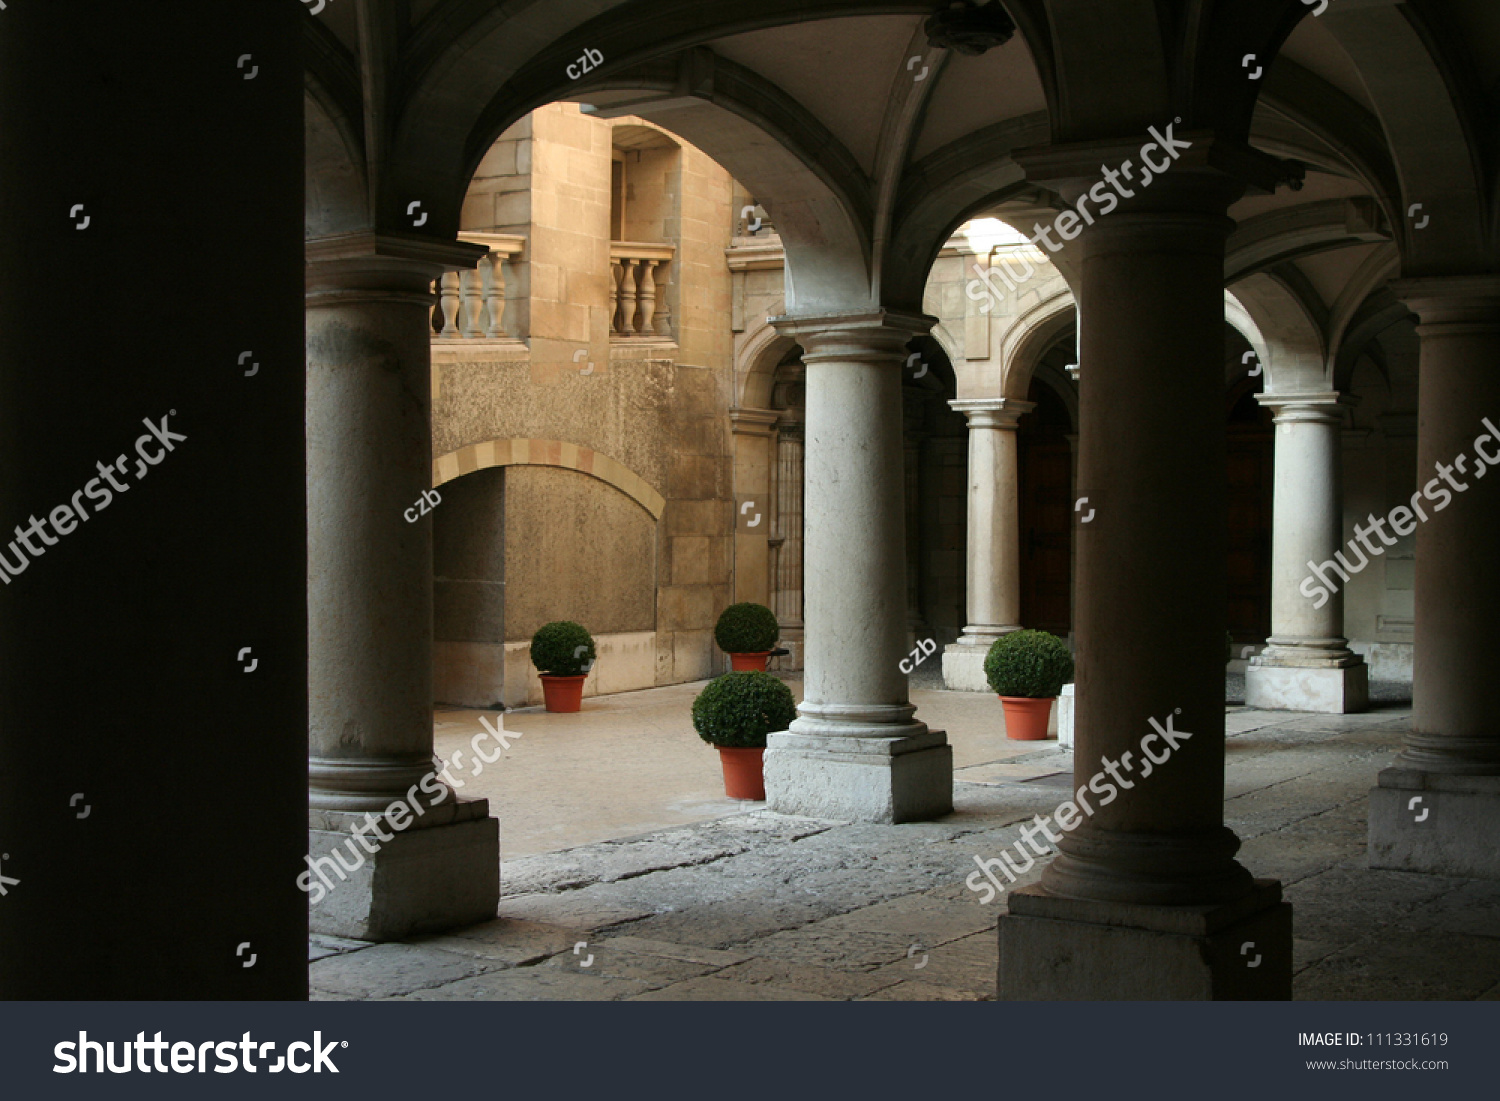 Stone Pillar Arch : Old buildings quad and patio stone pillars arches